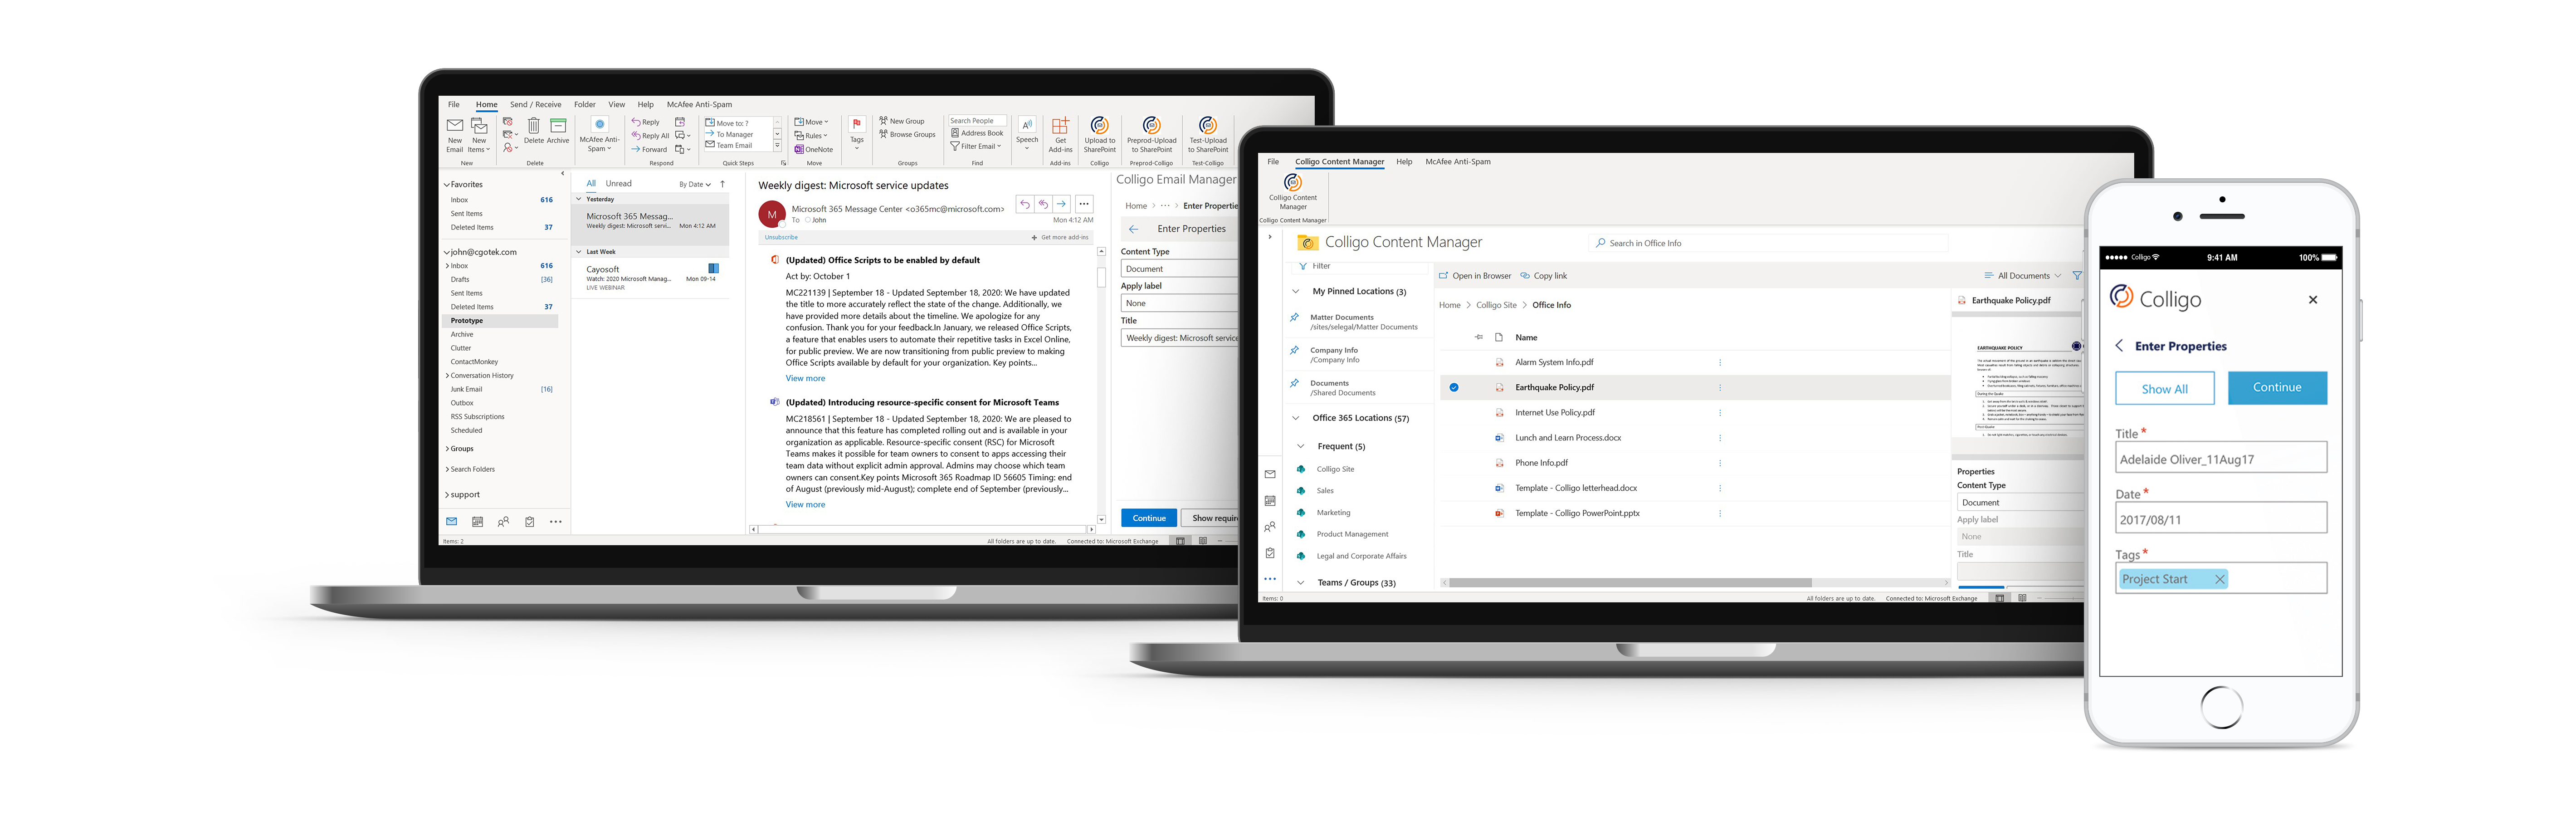 office 365 information governance SharePoint records management made simple with Colligo